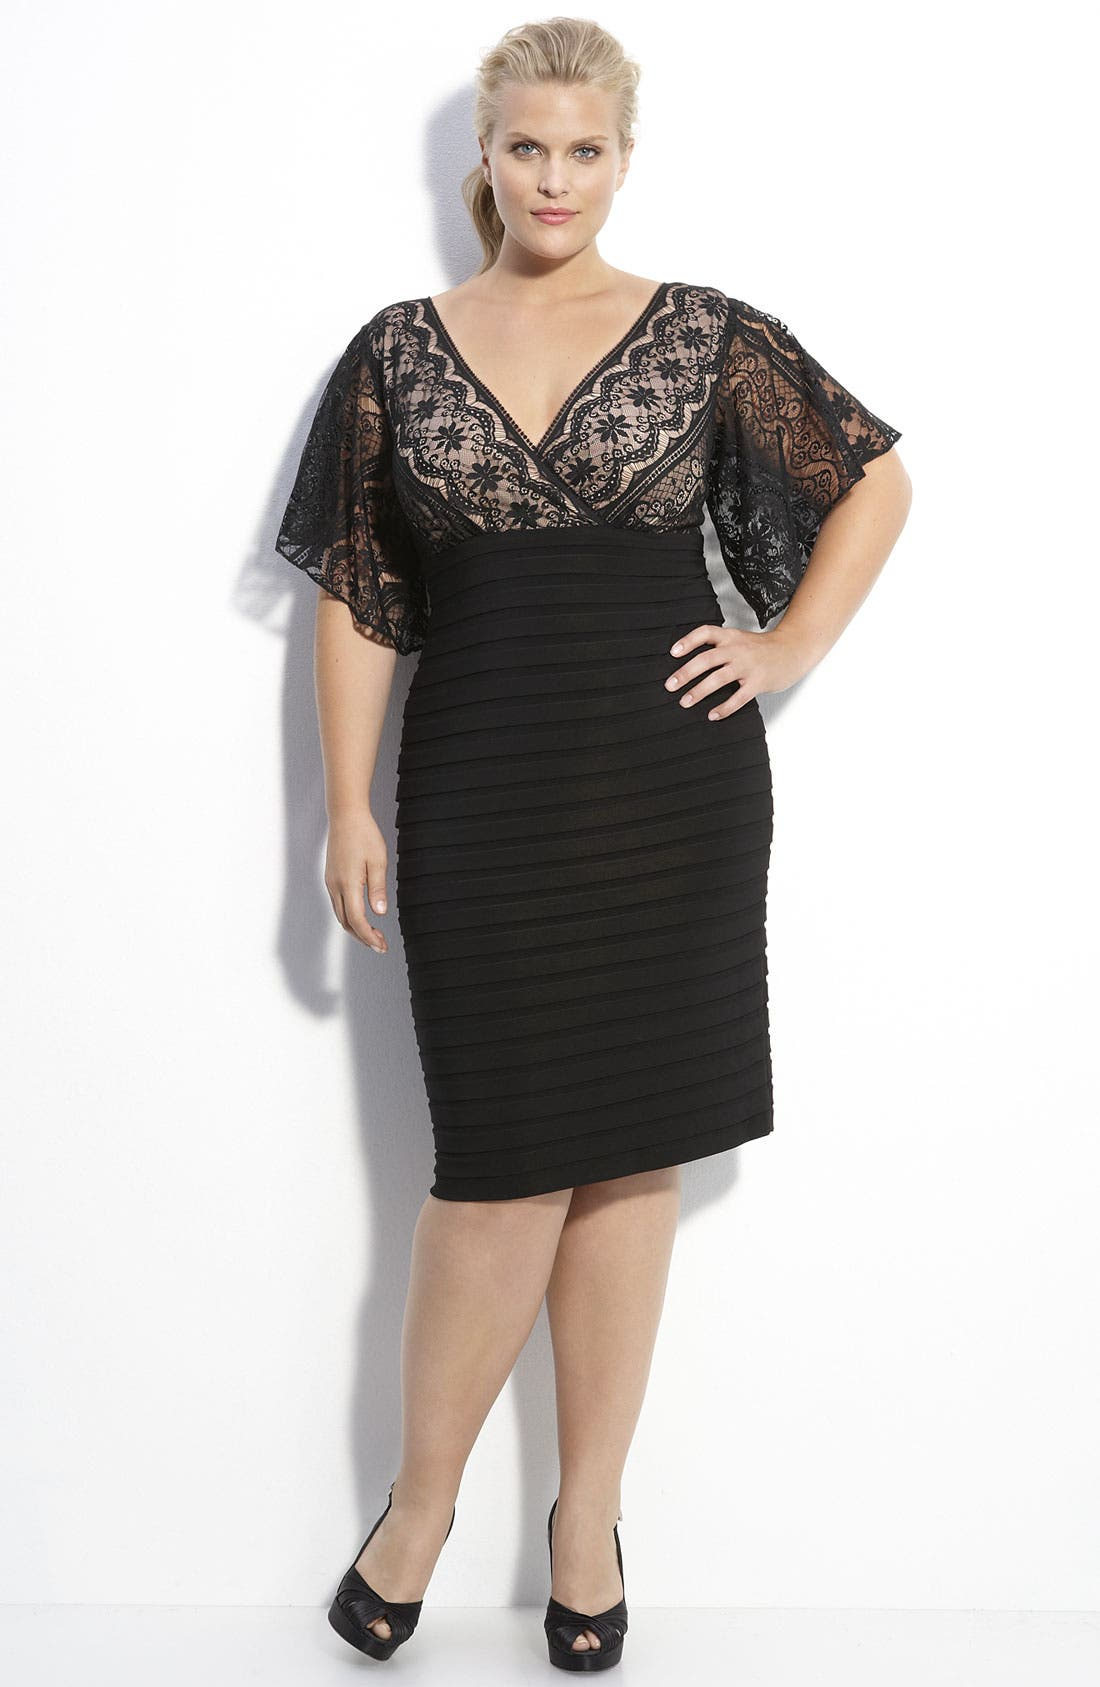 Alternate Image 1 Selected - Adrianna Papell Lace & Knit Dress (Plus Size)